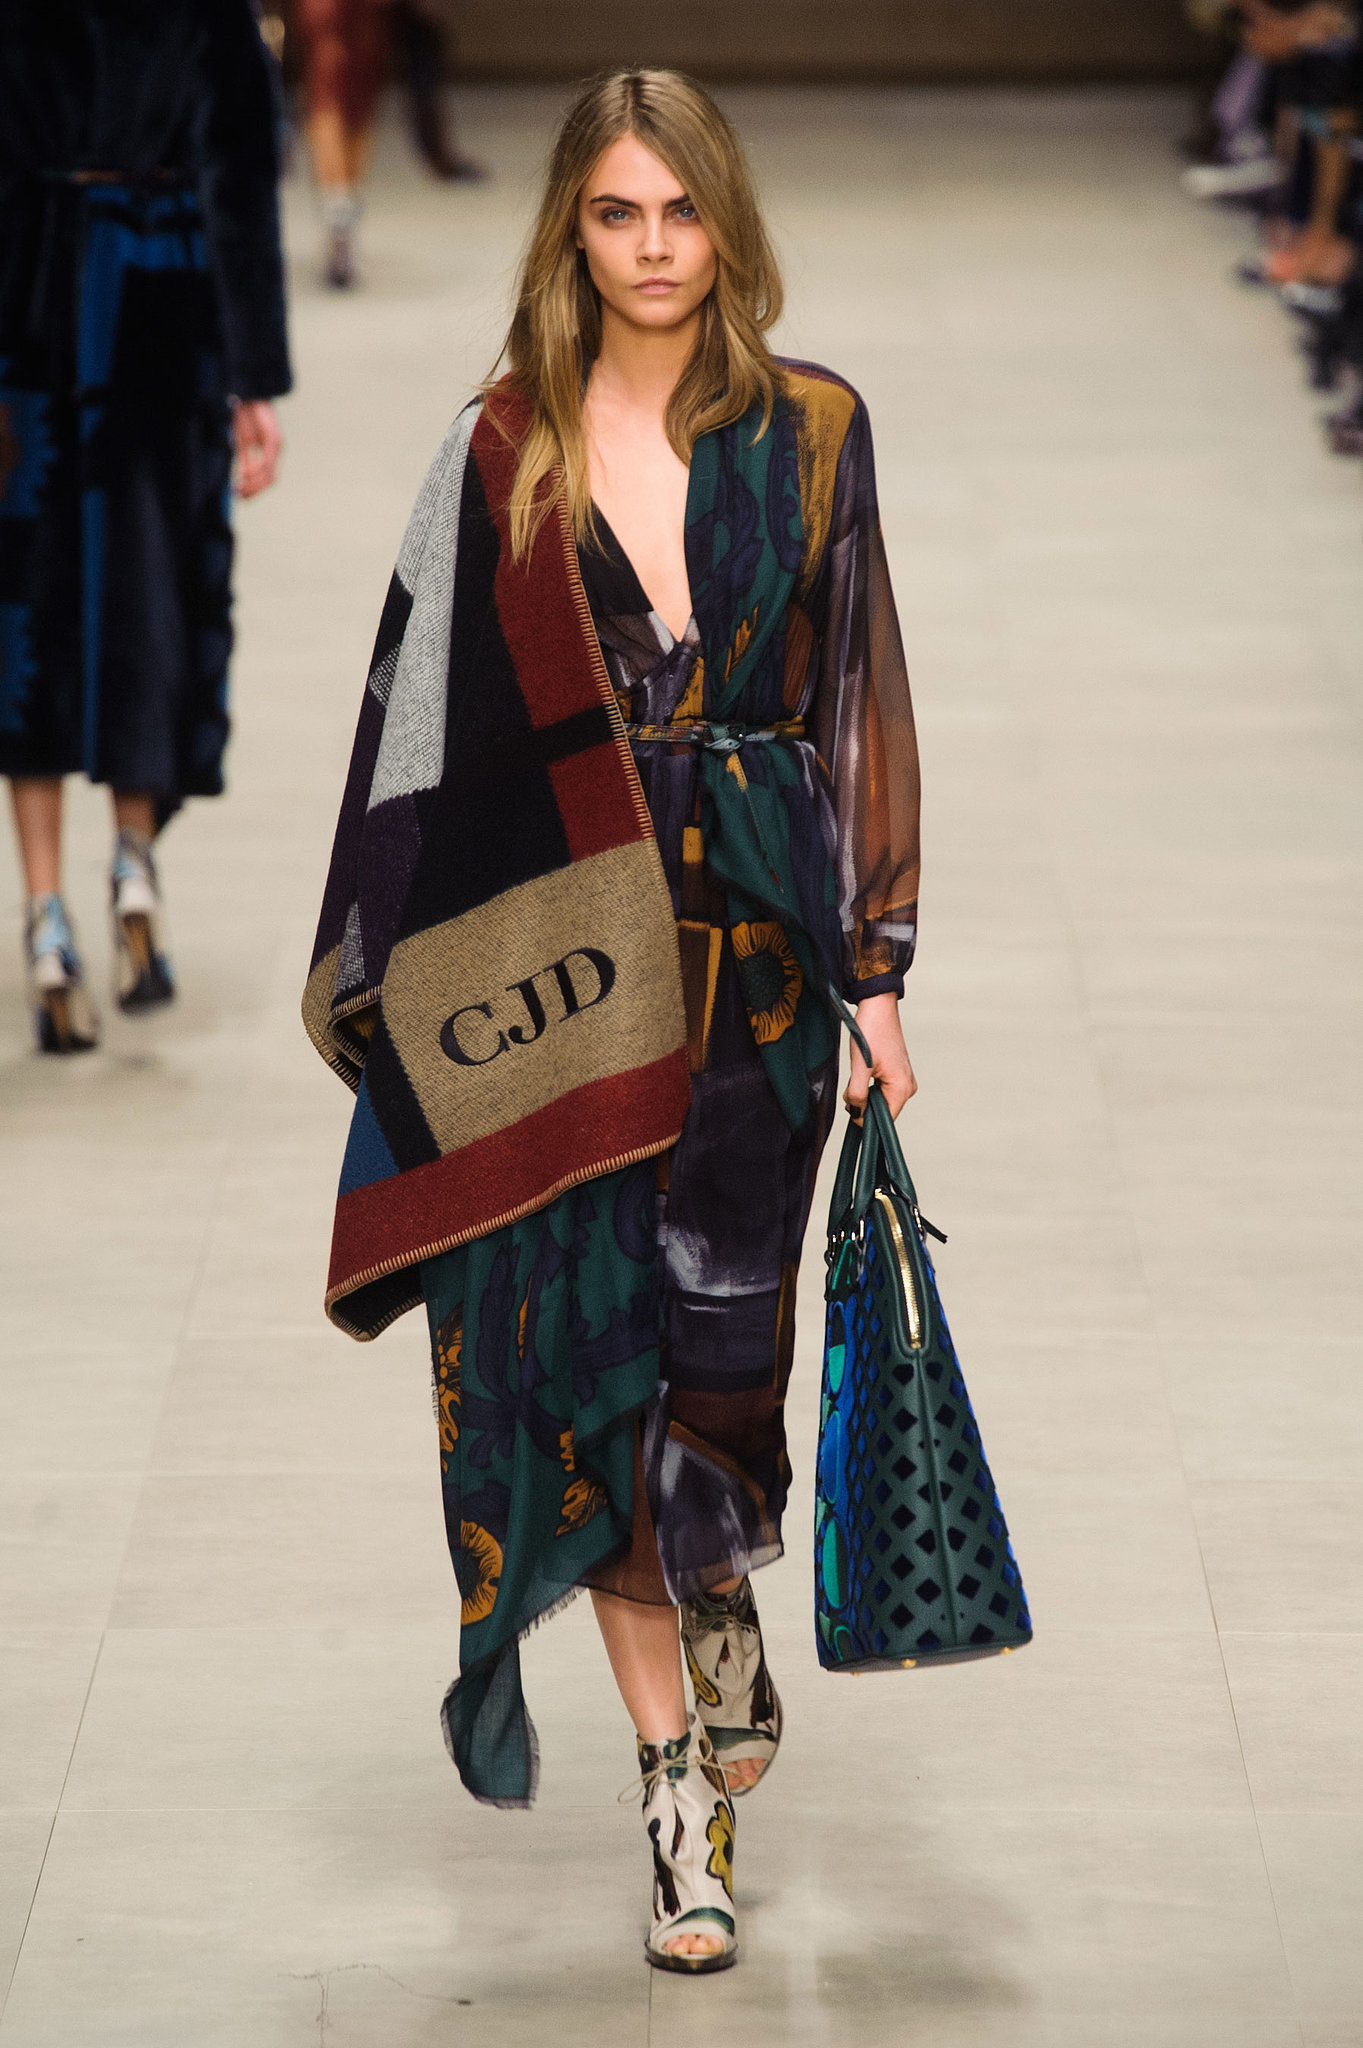 cara delevigne burberry runway something fashion spain valencia wrap coat scarf initials personalized cape